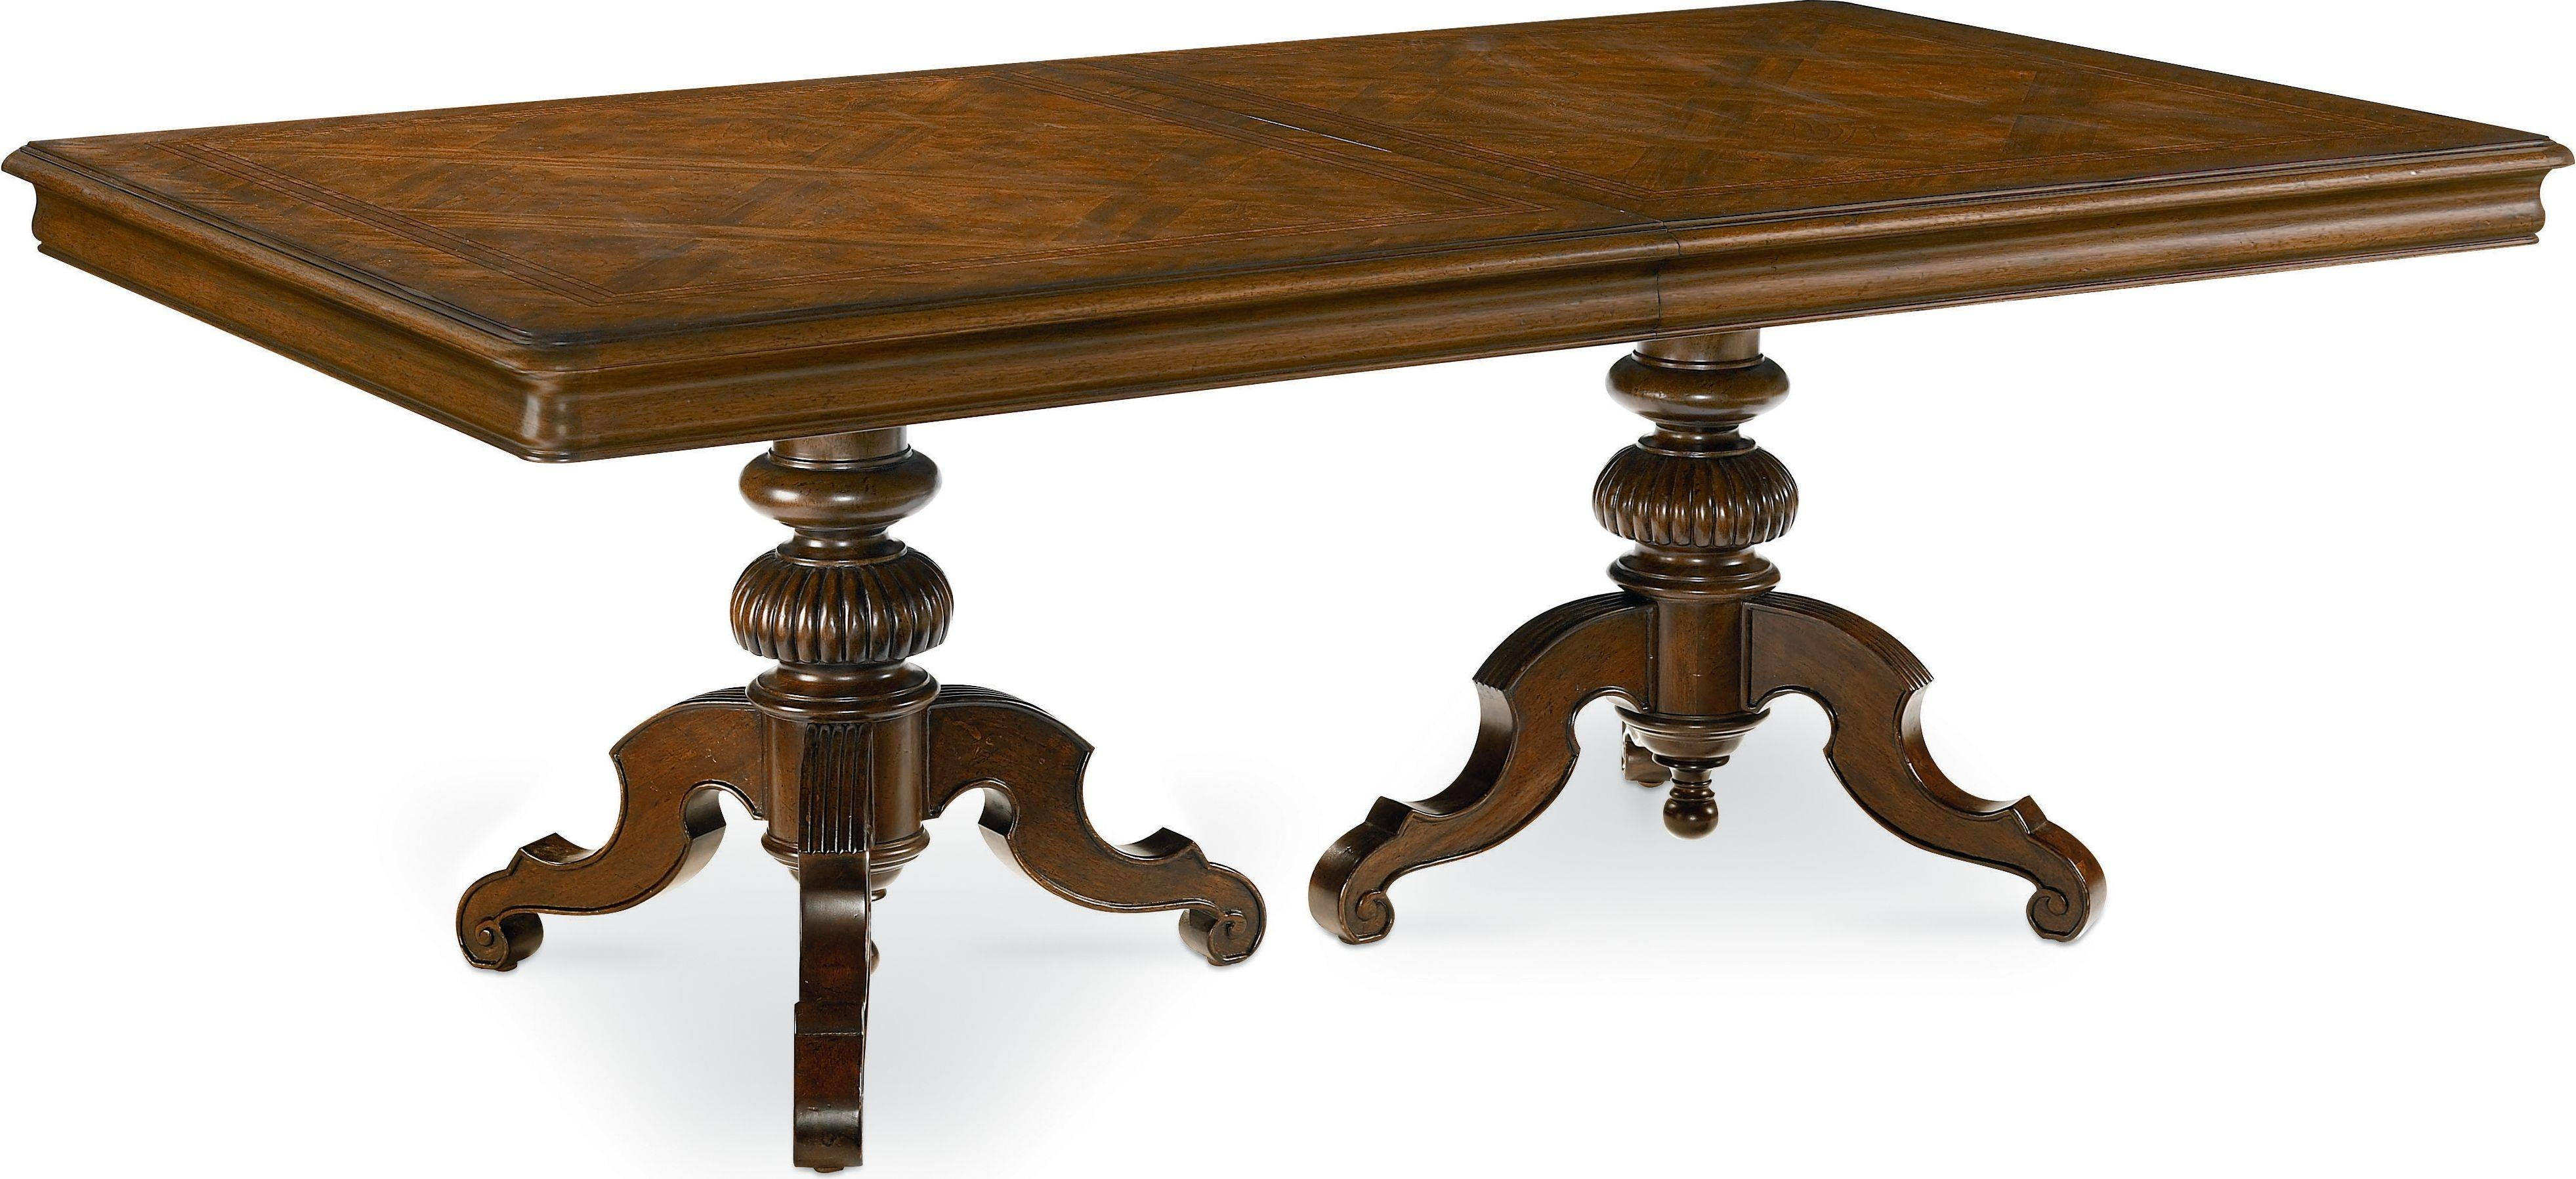 Dining Room Thomasville Earnest Hemingway Castillian Dining Table